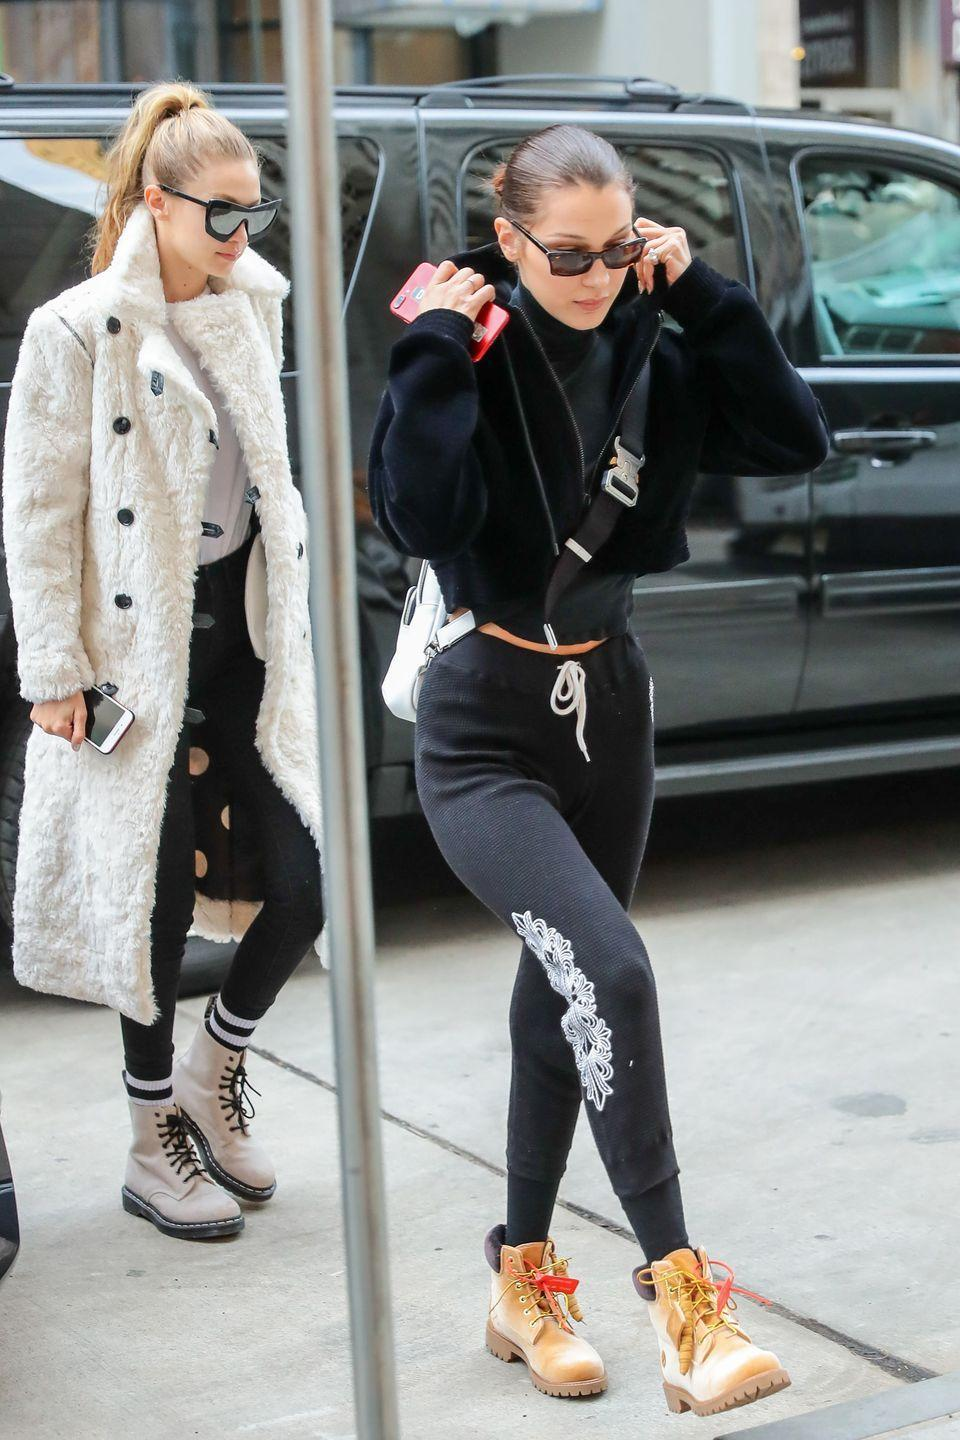 <p>Bella wears a cropped bomber jacket and black turtleneck, black waffle sweatpants, sunglasses, crossbody bag, and Timberland boots while out in NYC. Gigi follows close behind with a furry white coat, white tee, leggings, tube socks, Dr. Martens boots, and oversized sunglasses.</p>